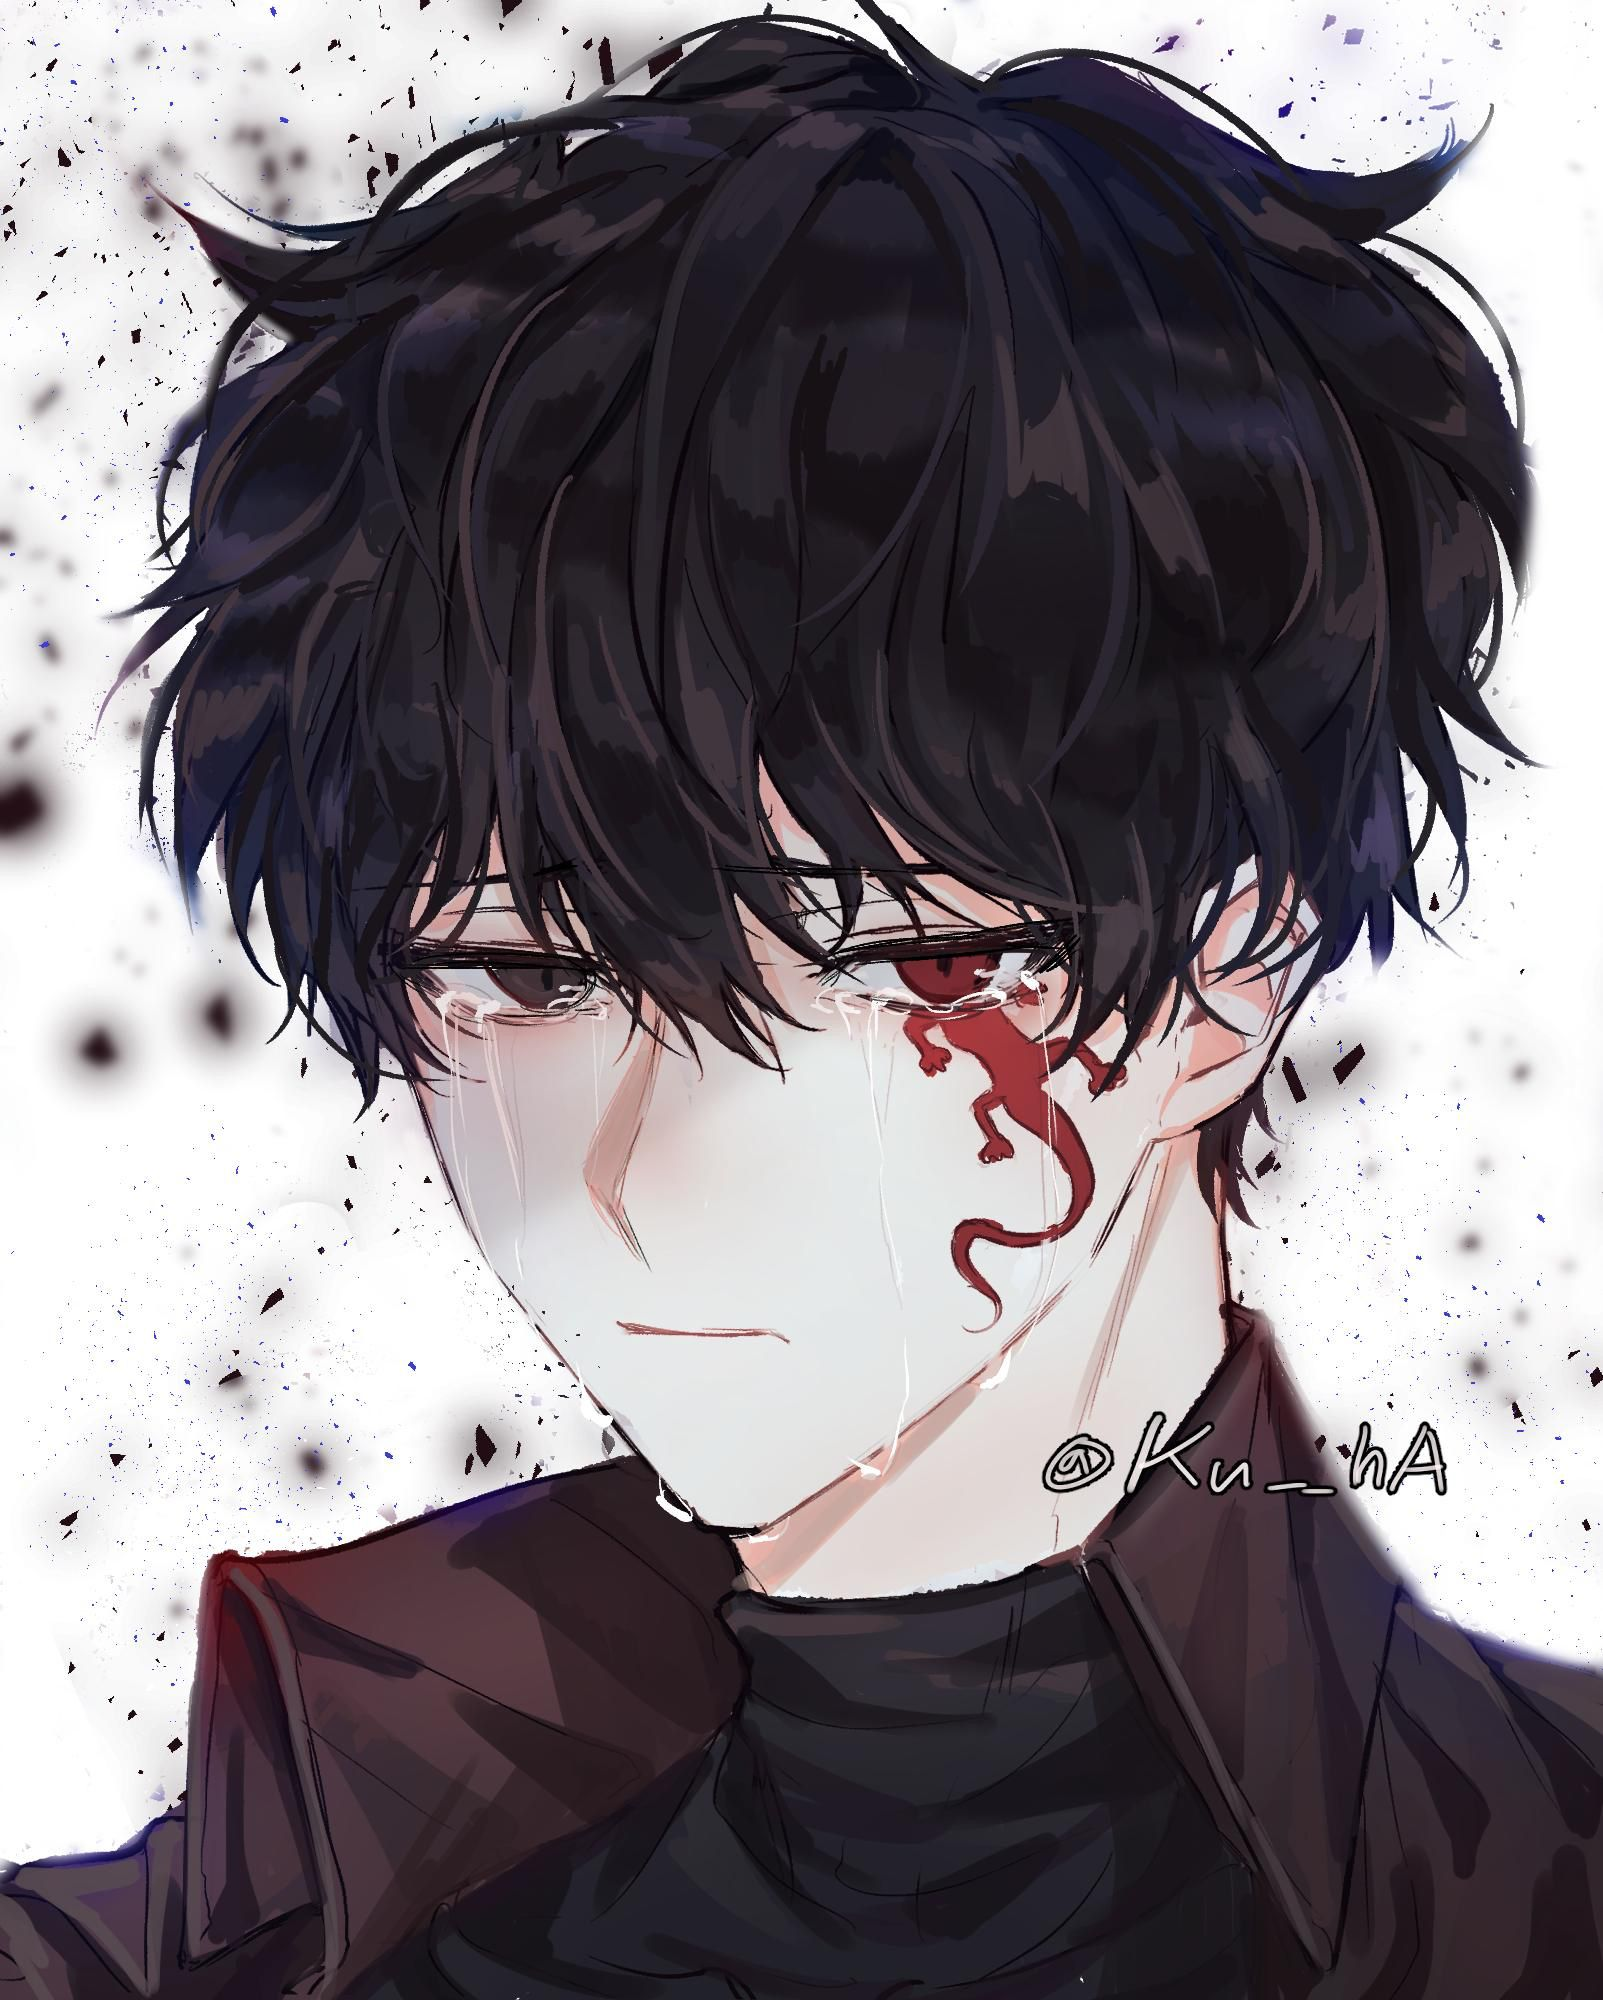 Pin By Mieko Kpop On Unie Cute Anime Guys Anime Drawings Boy Handsome Anime